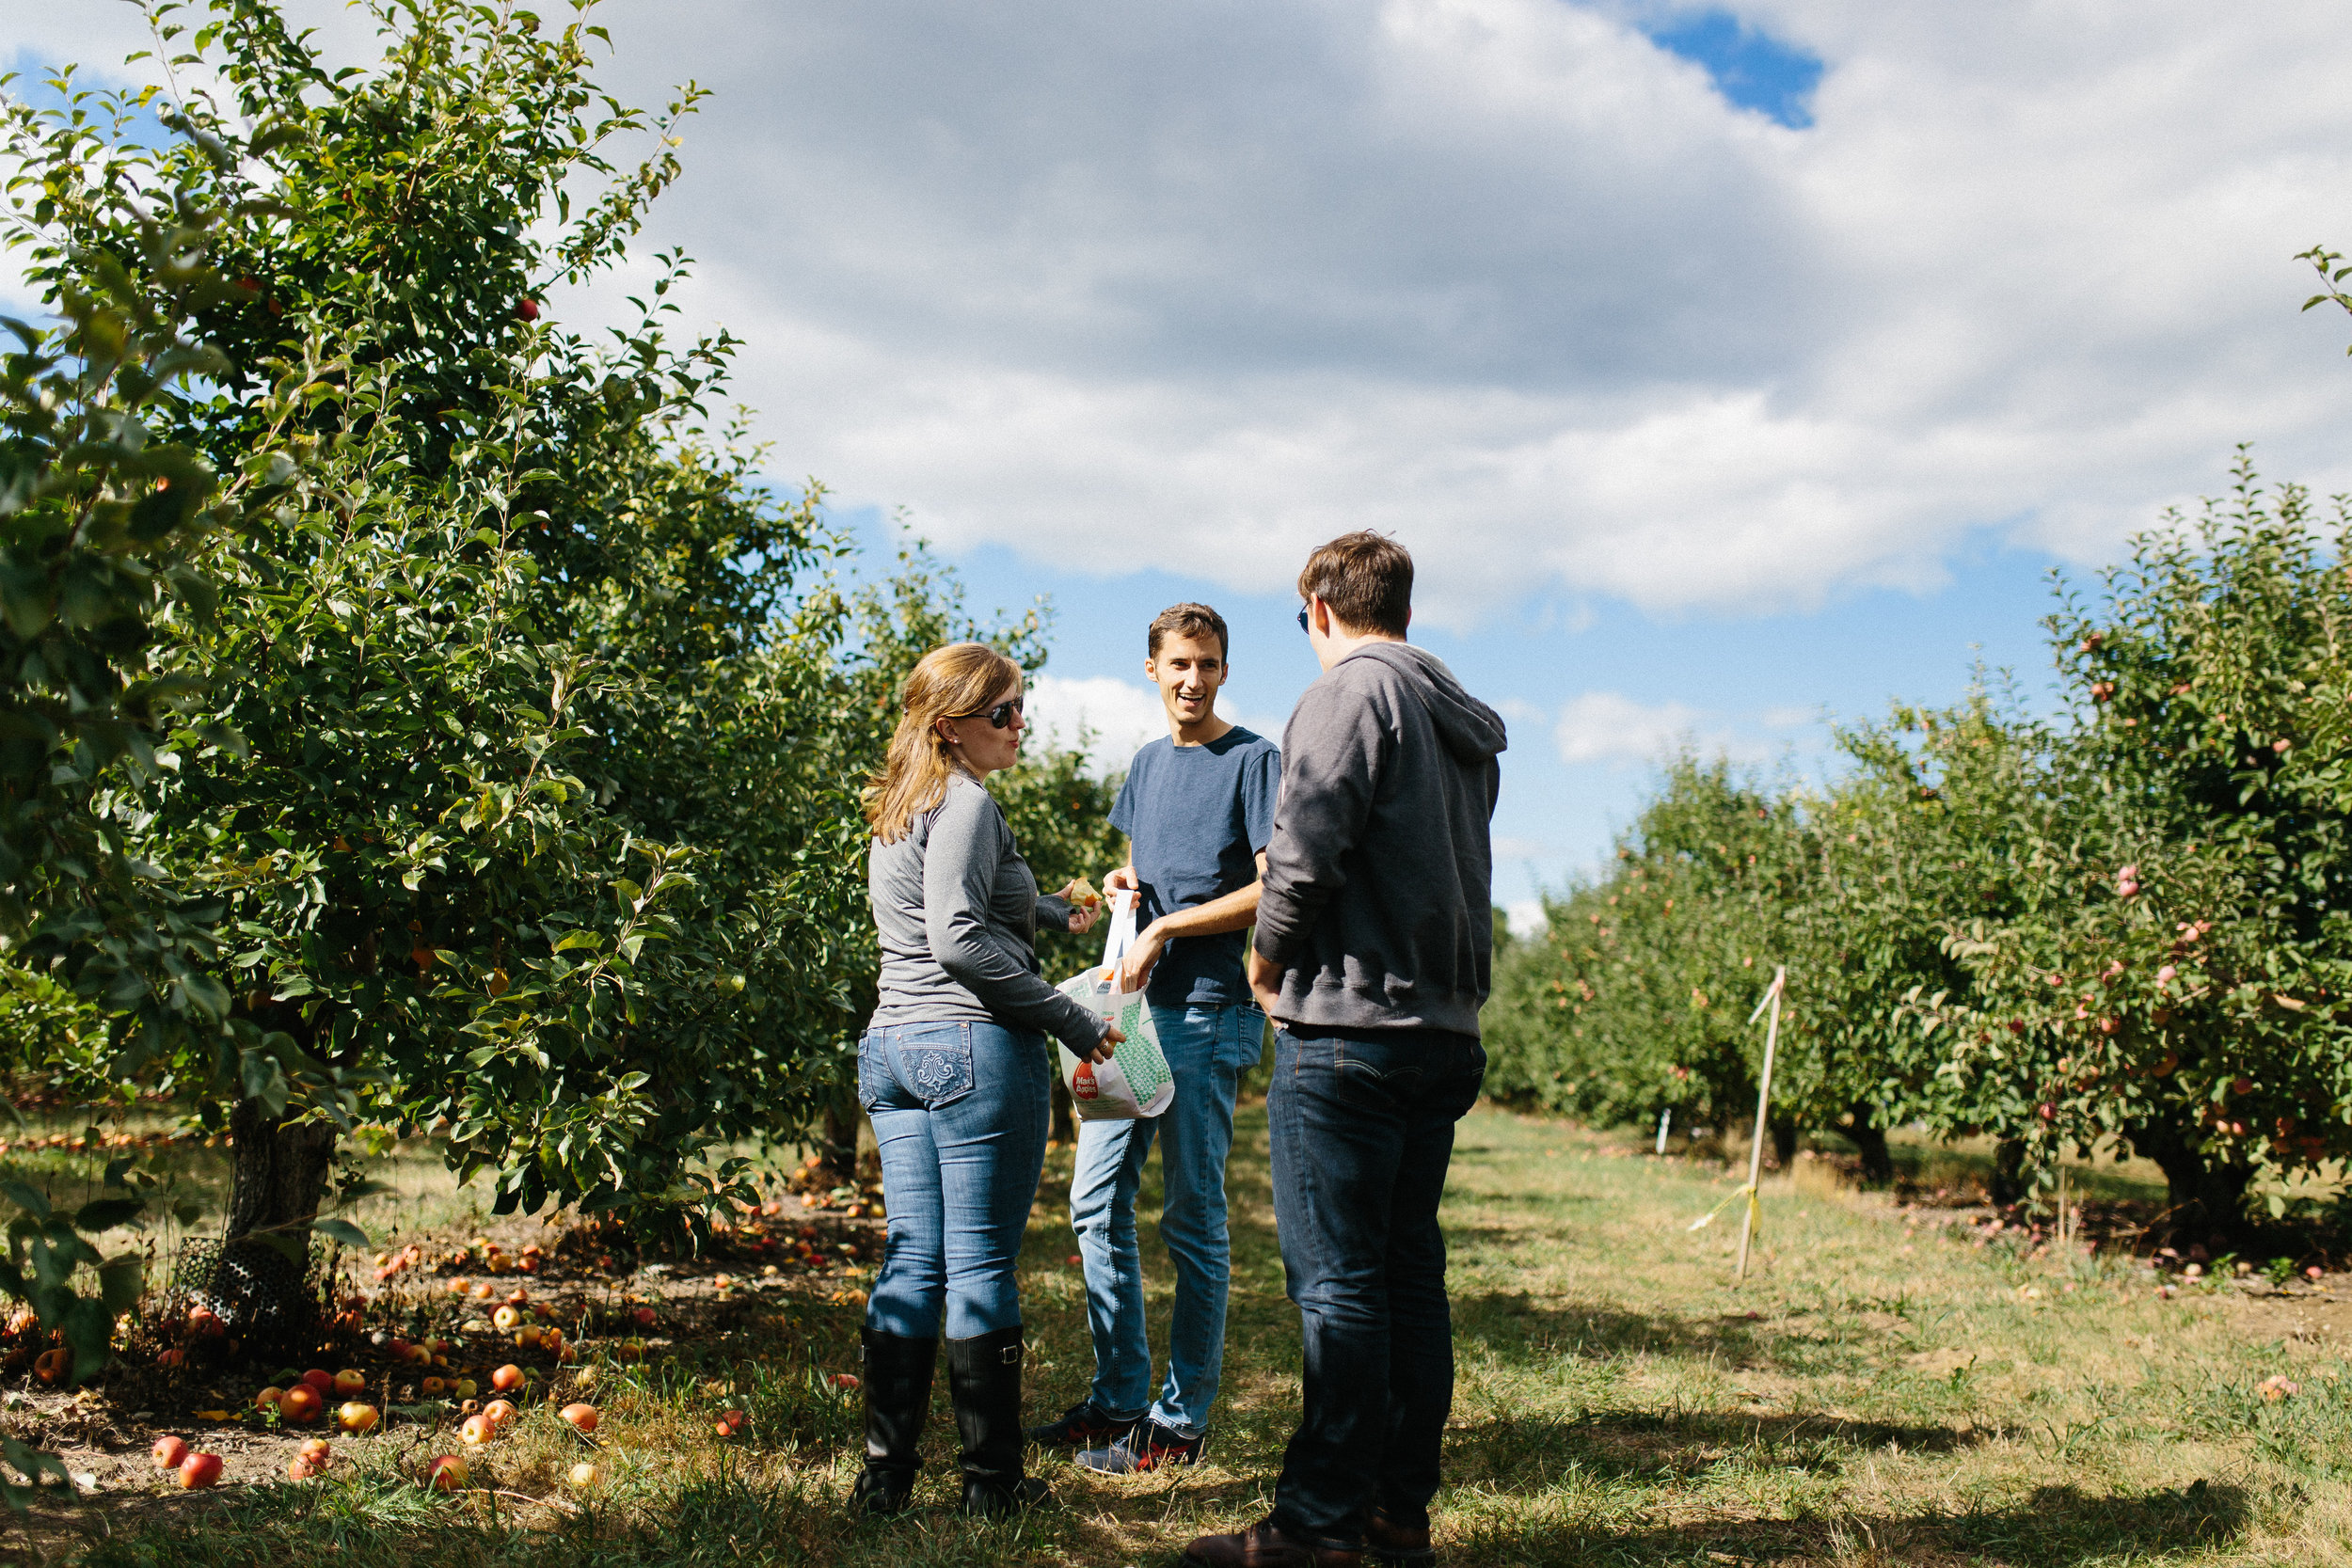 Friends Going Apple Picking